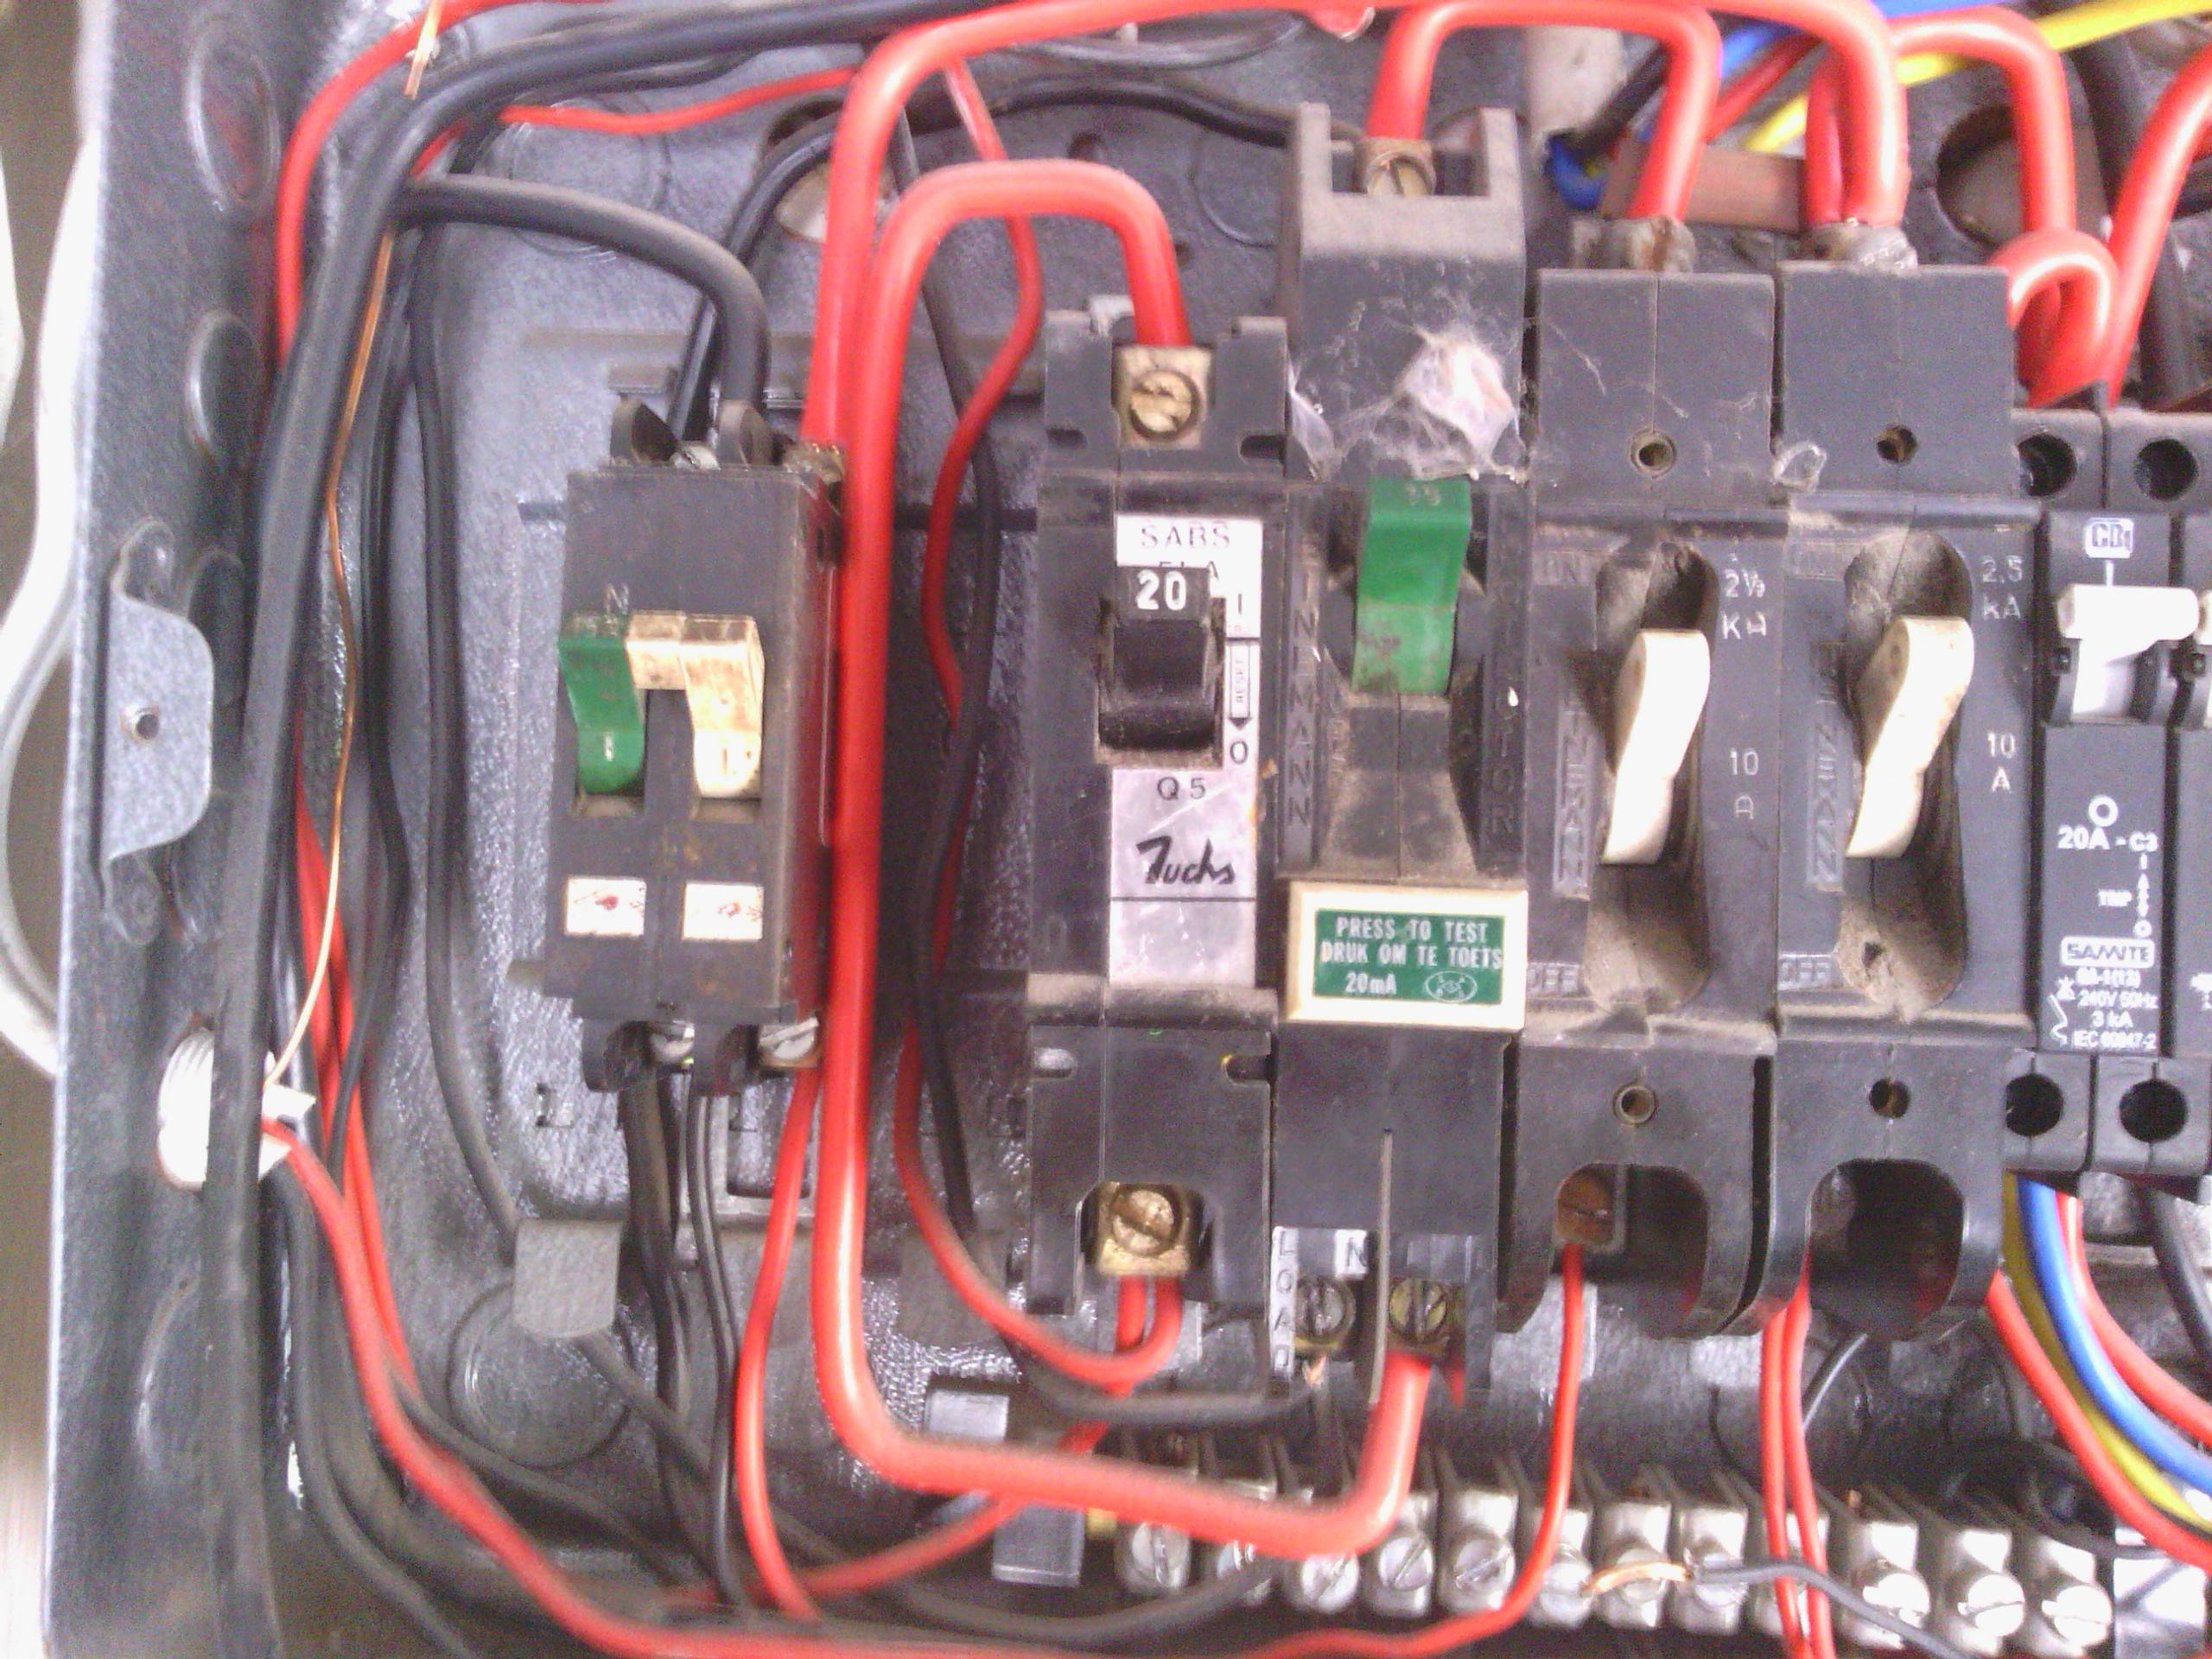 wiring a breaker box diagram 7 pin flat trailer with brakes electrical - why two breakers (one for the line, one neutral) on single-phase line ...